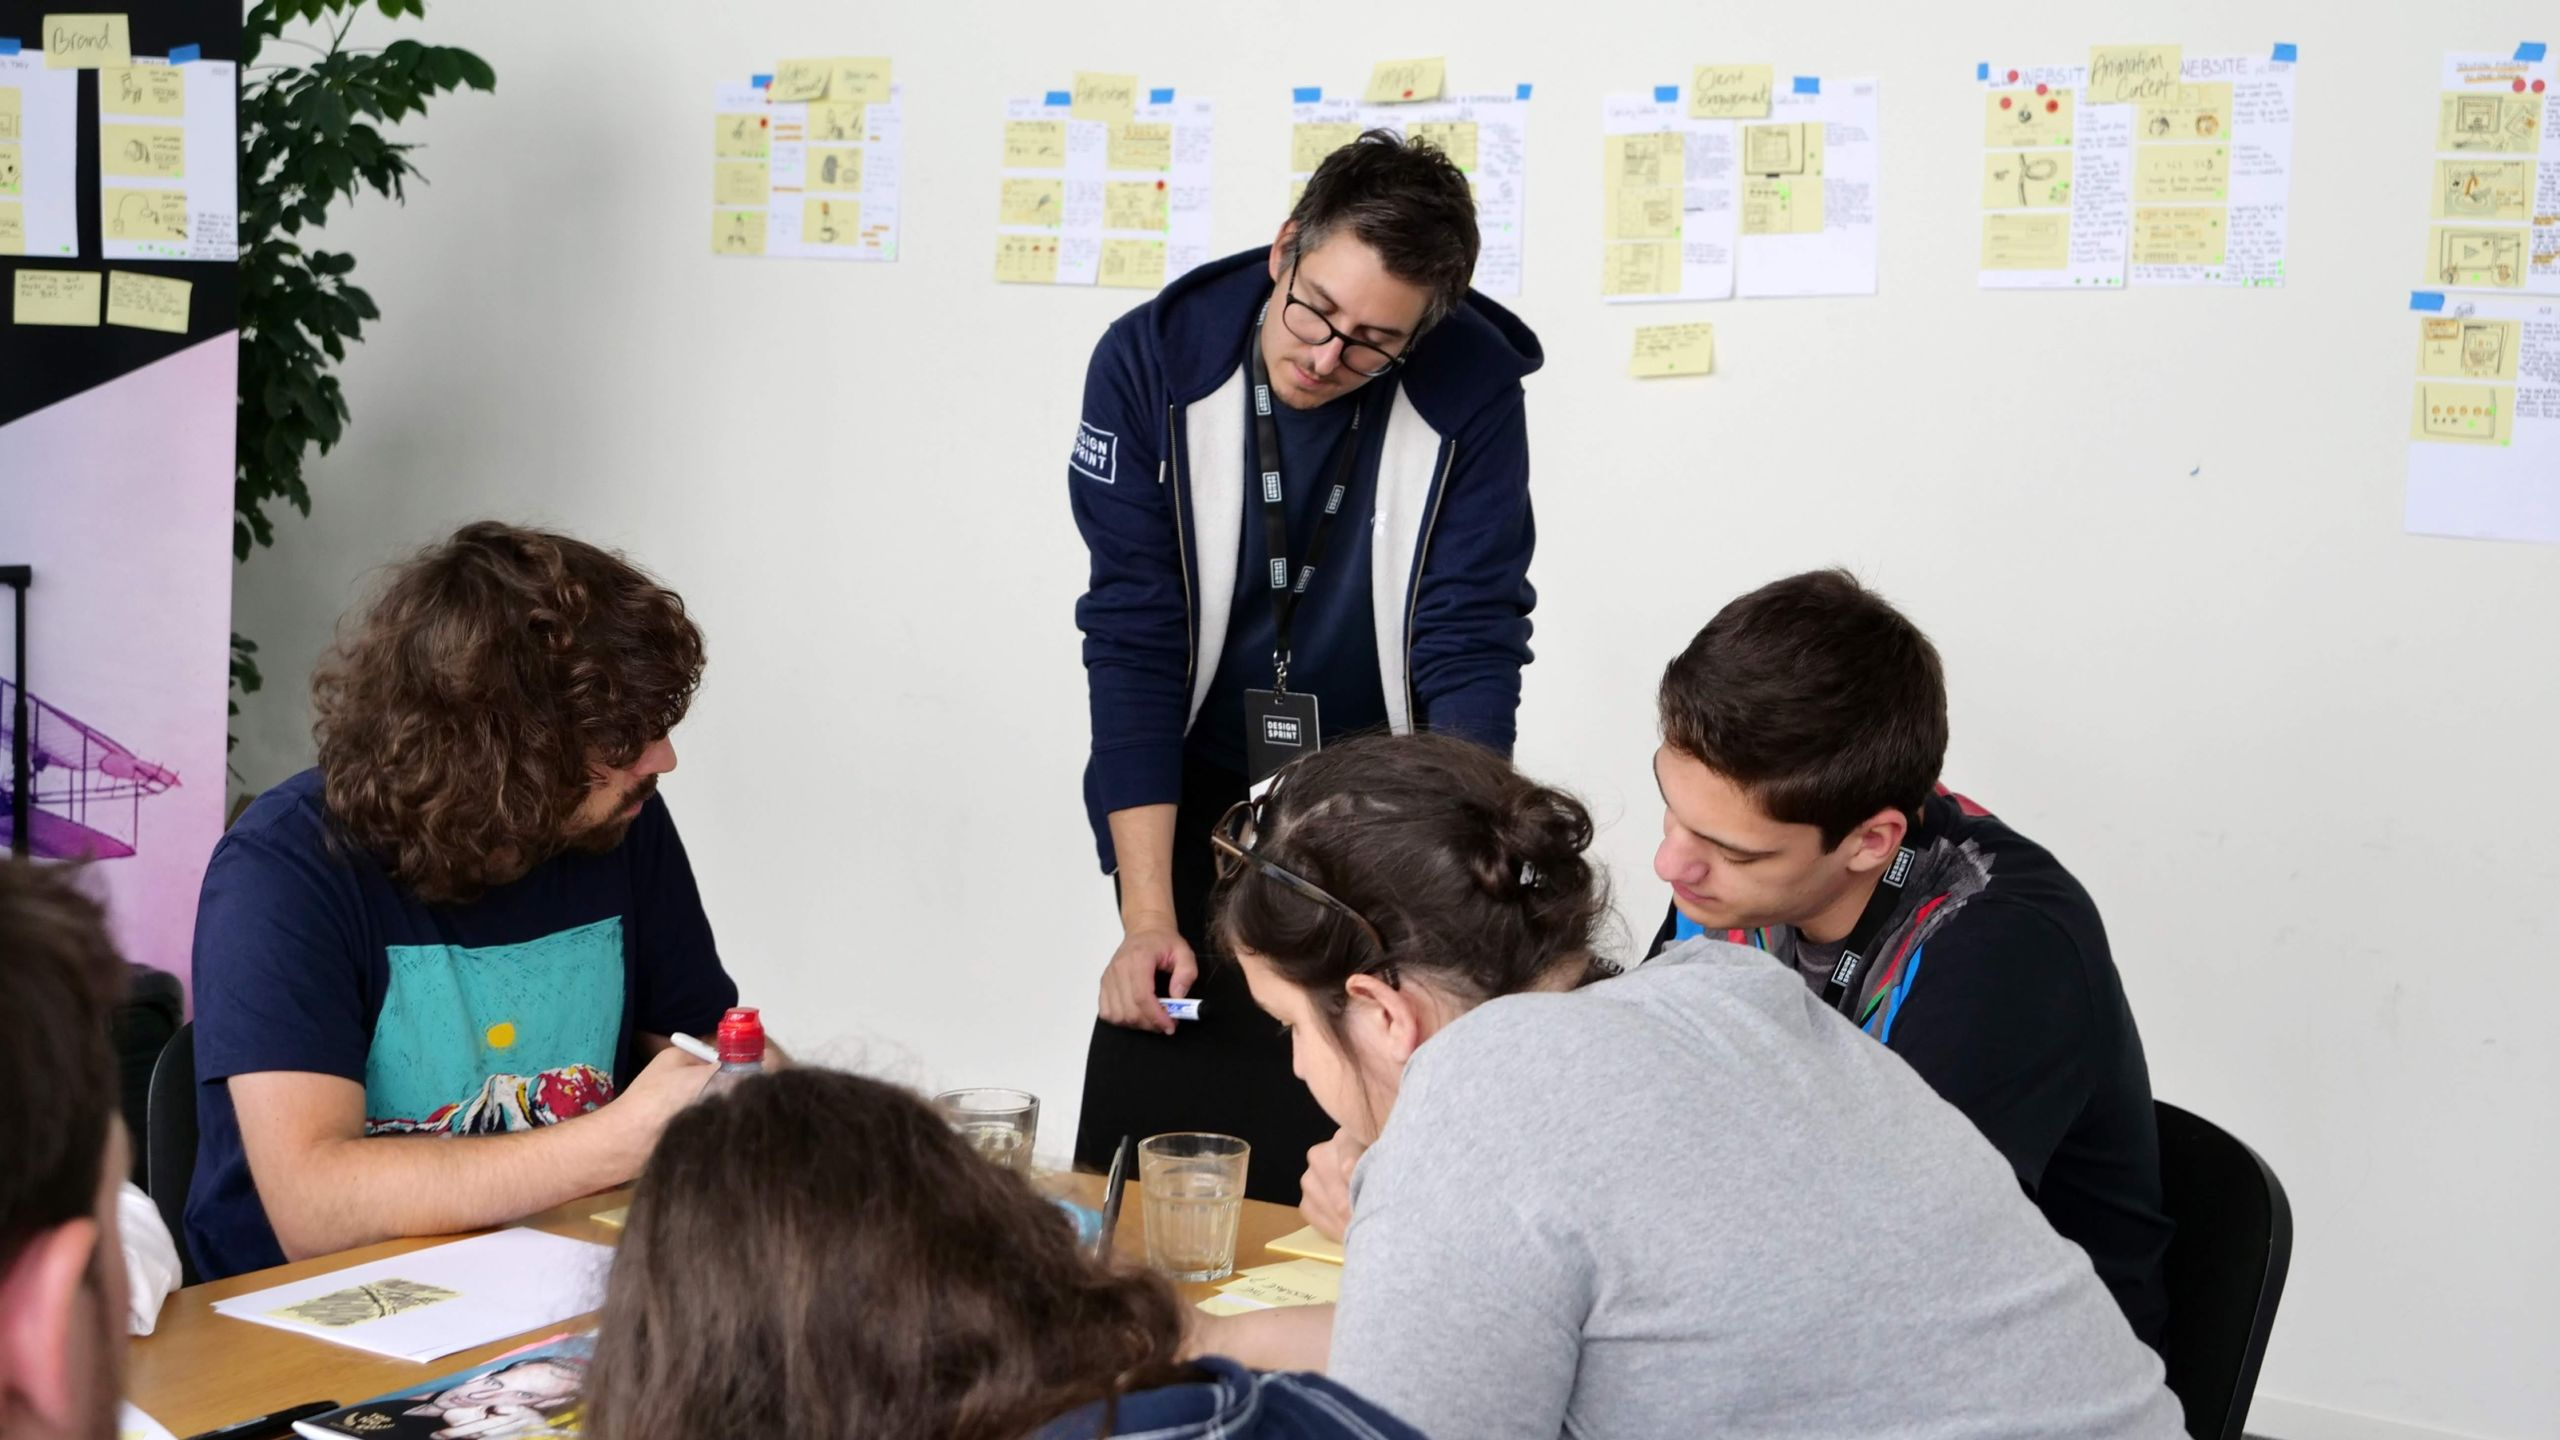 Design Sprint expert coaching